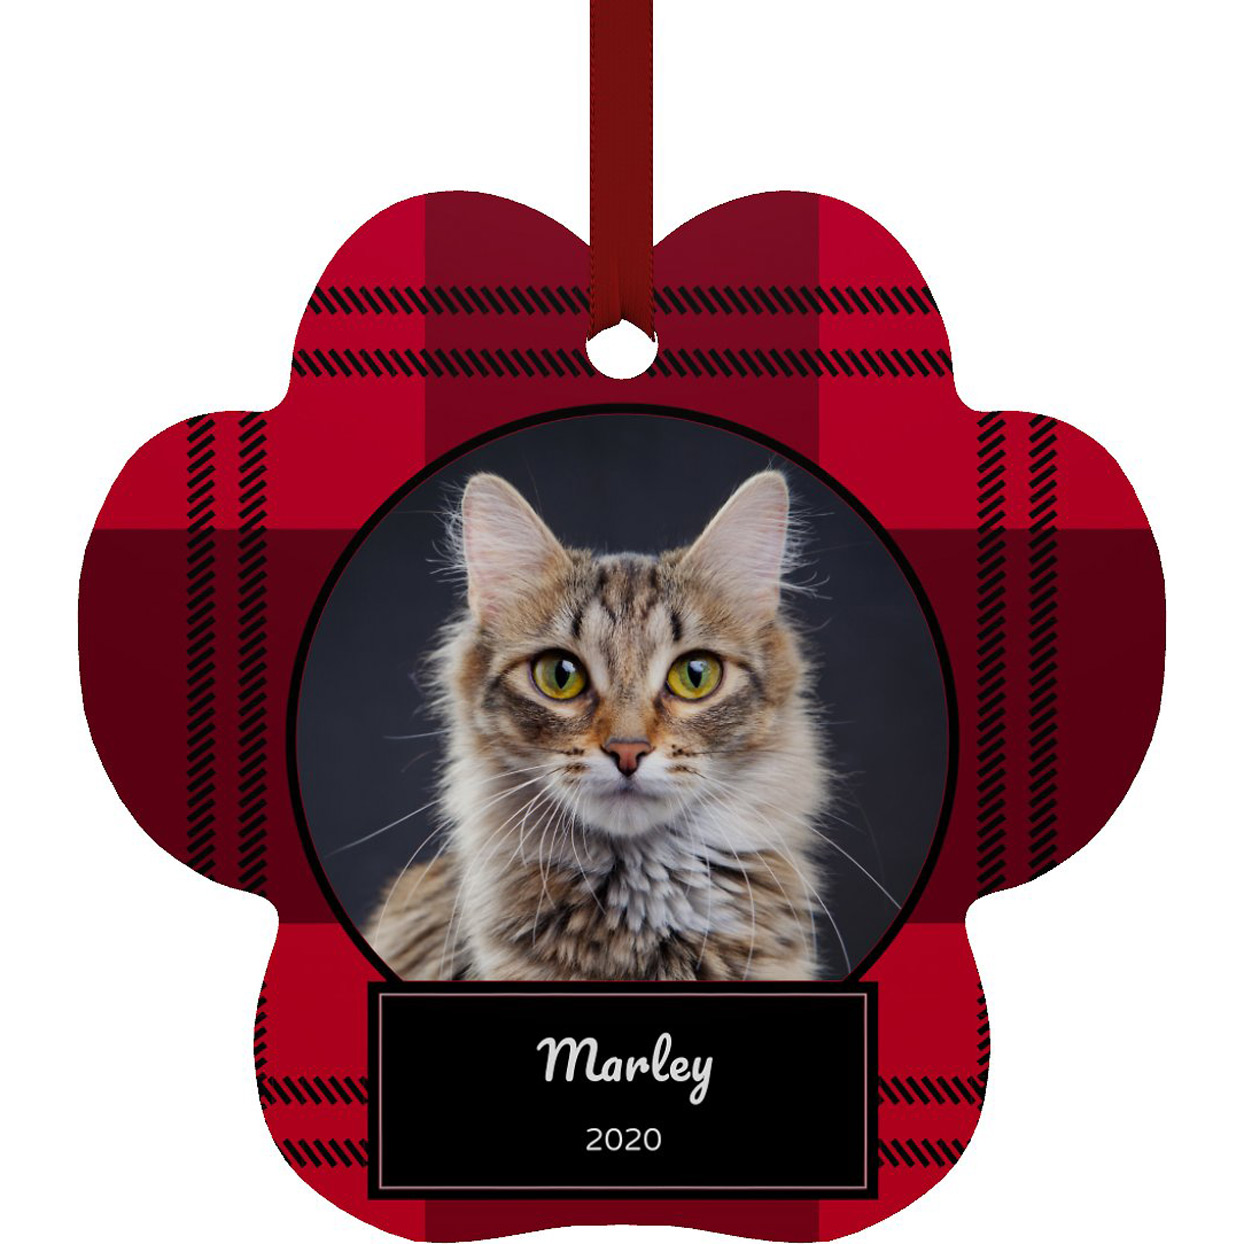 20 Pet Christmas Ornaments To Celebrate Your Furry Friend This Holiday Season Daily Paws